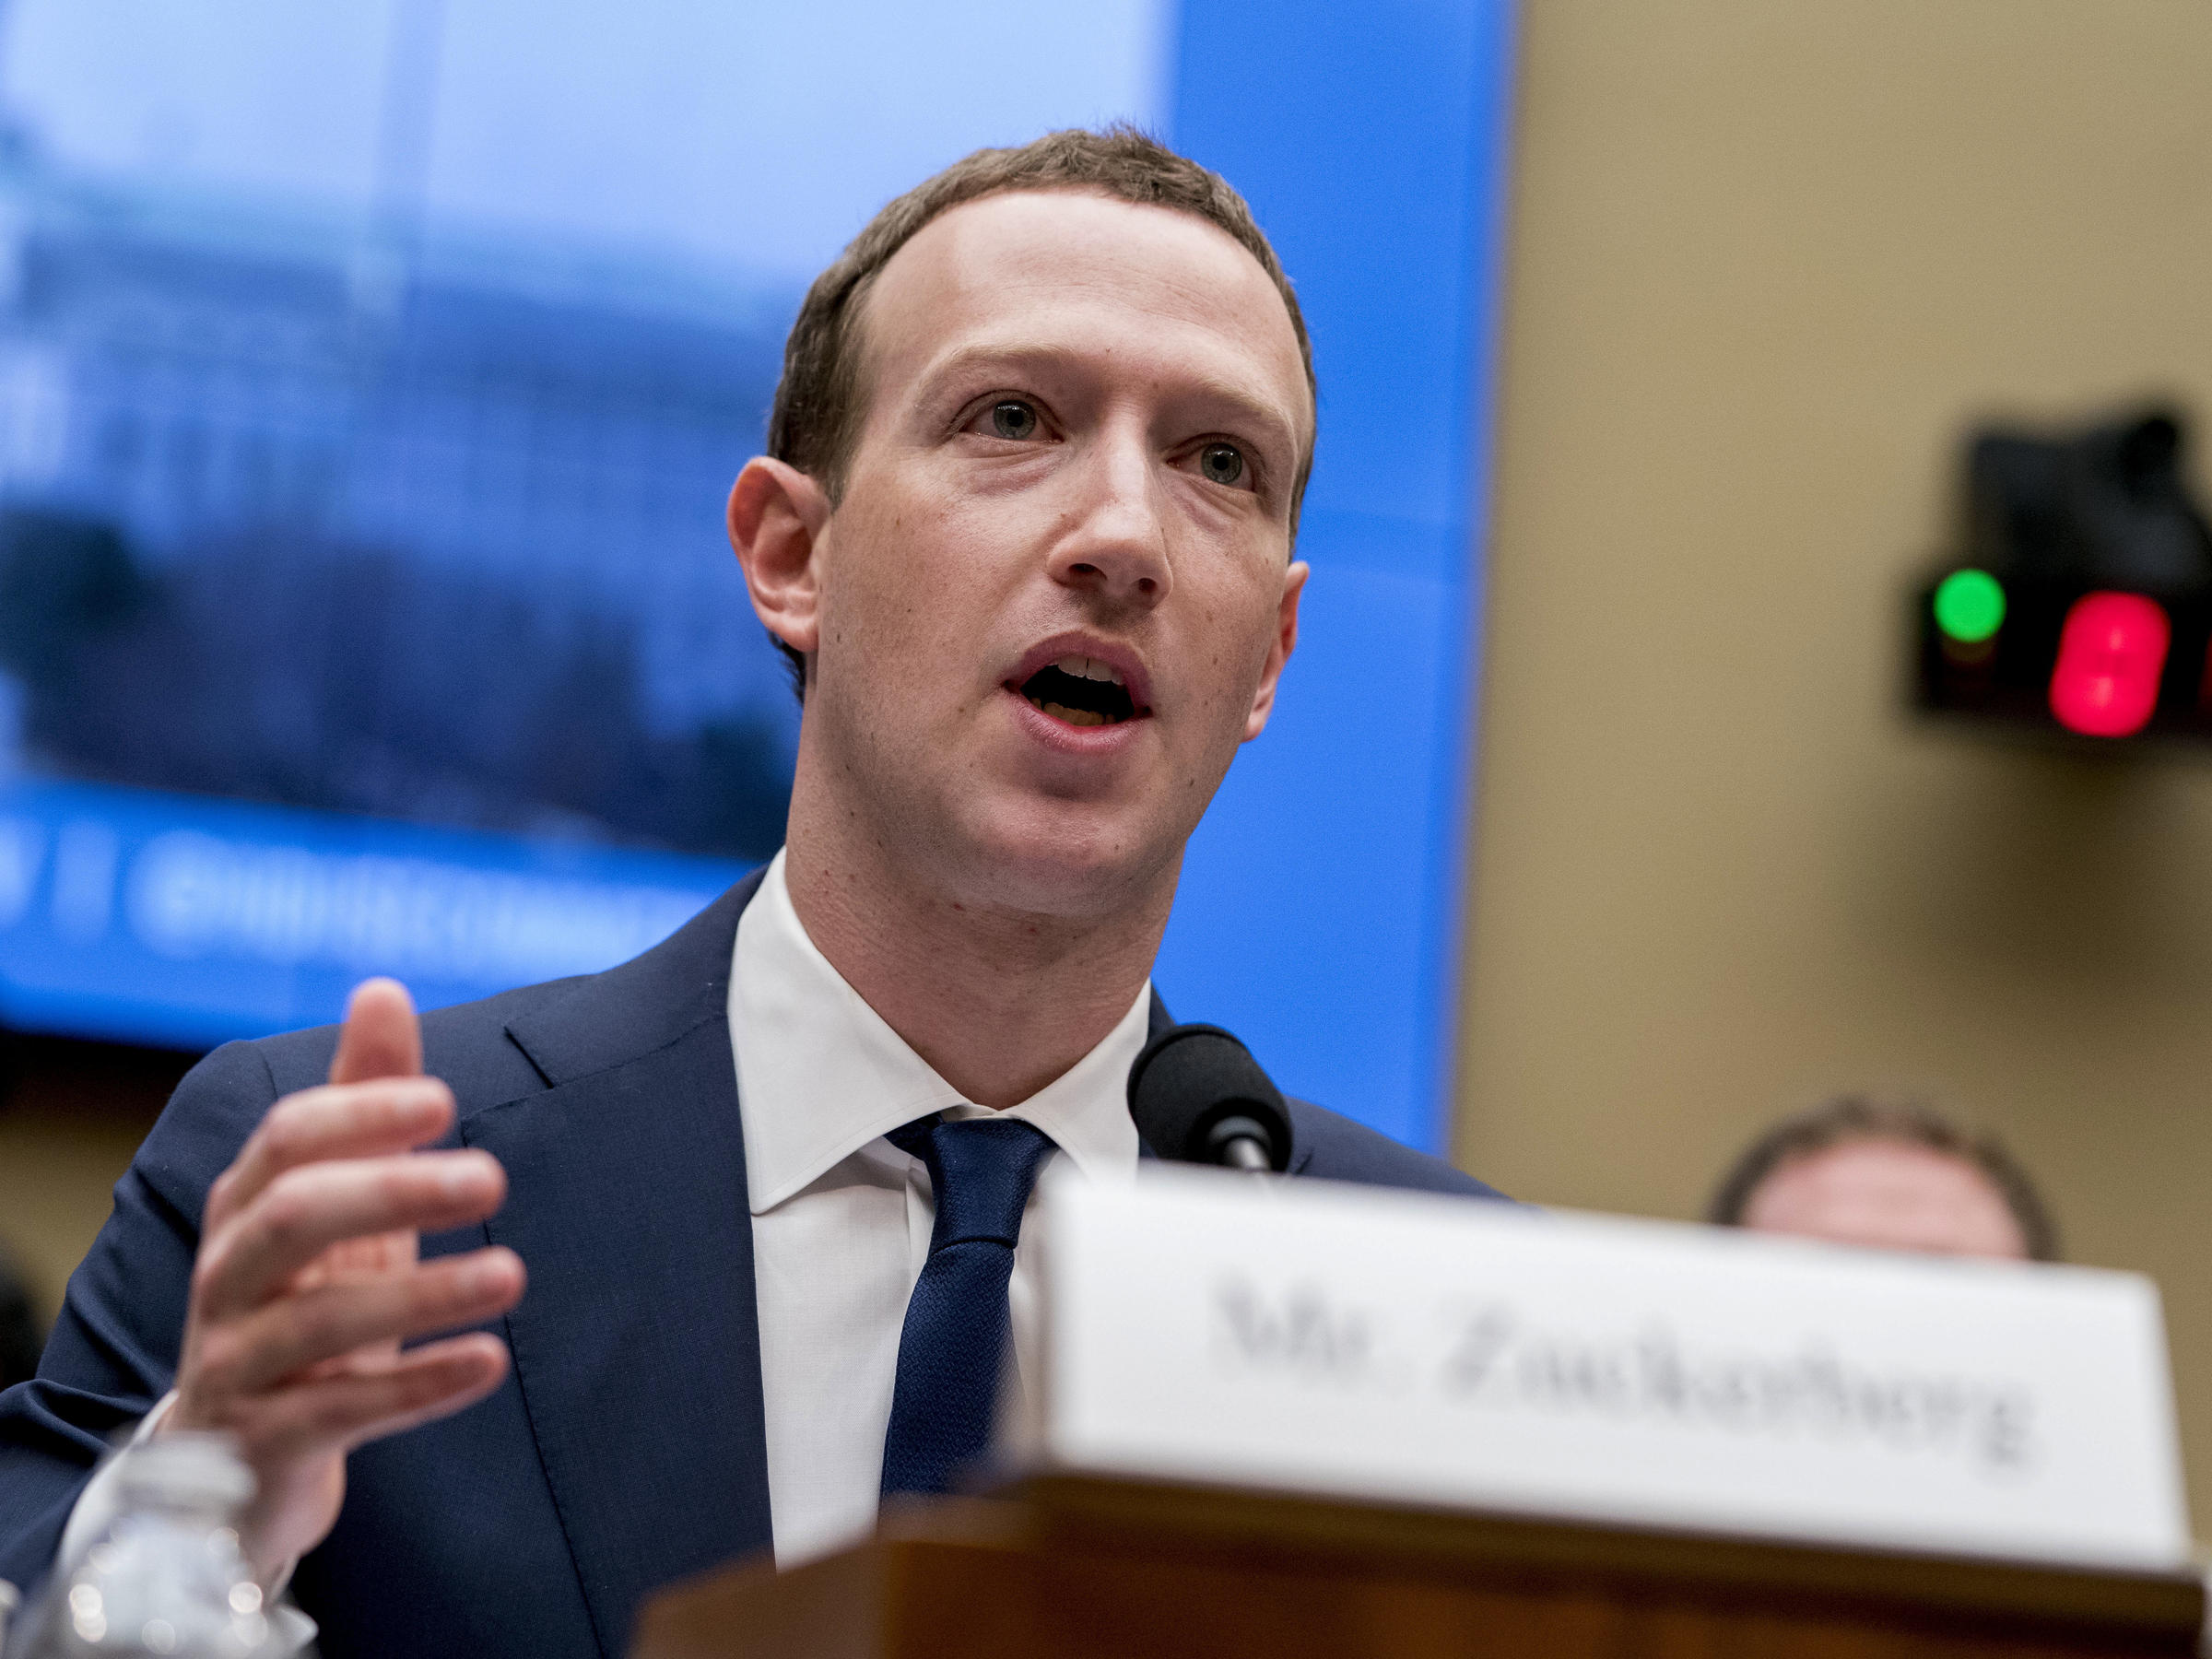 Did Facebook CEO Mark Zuckerberg Intend To Deceive? | WLRN